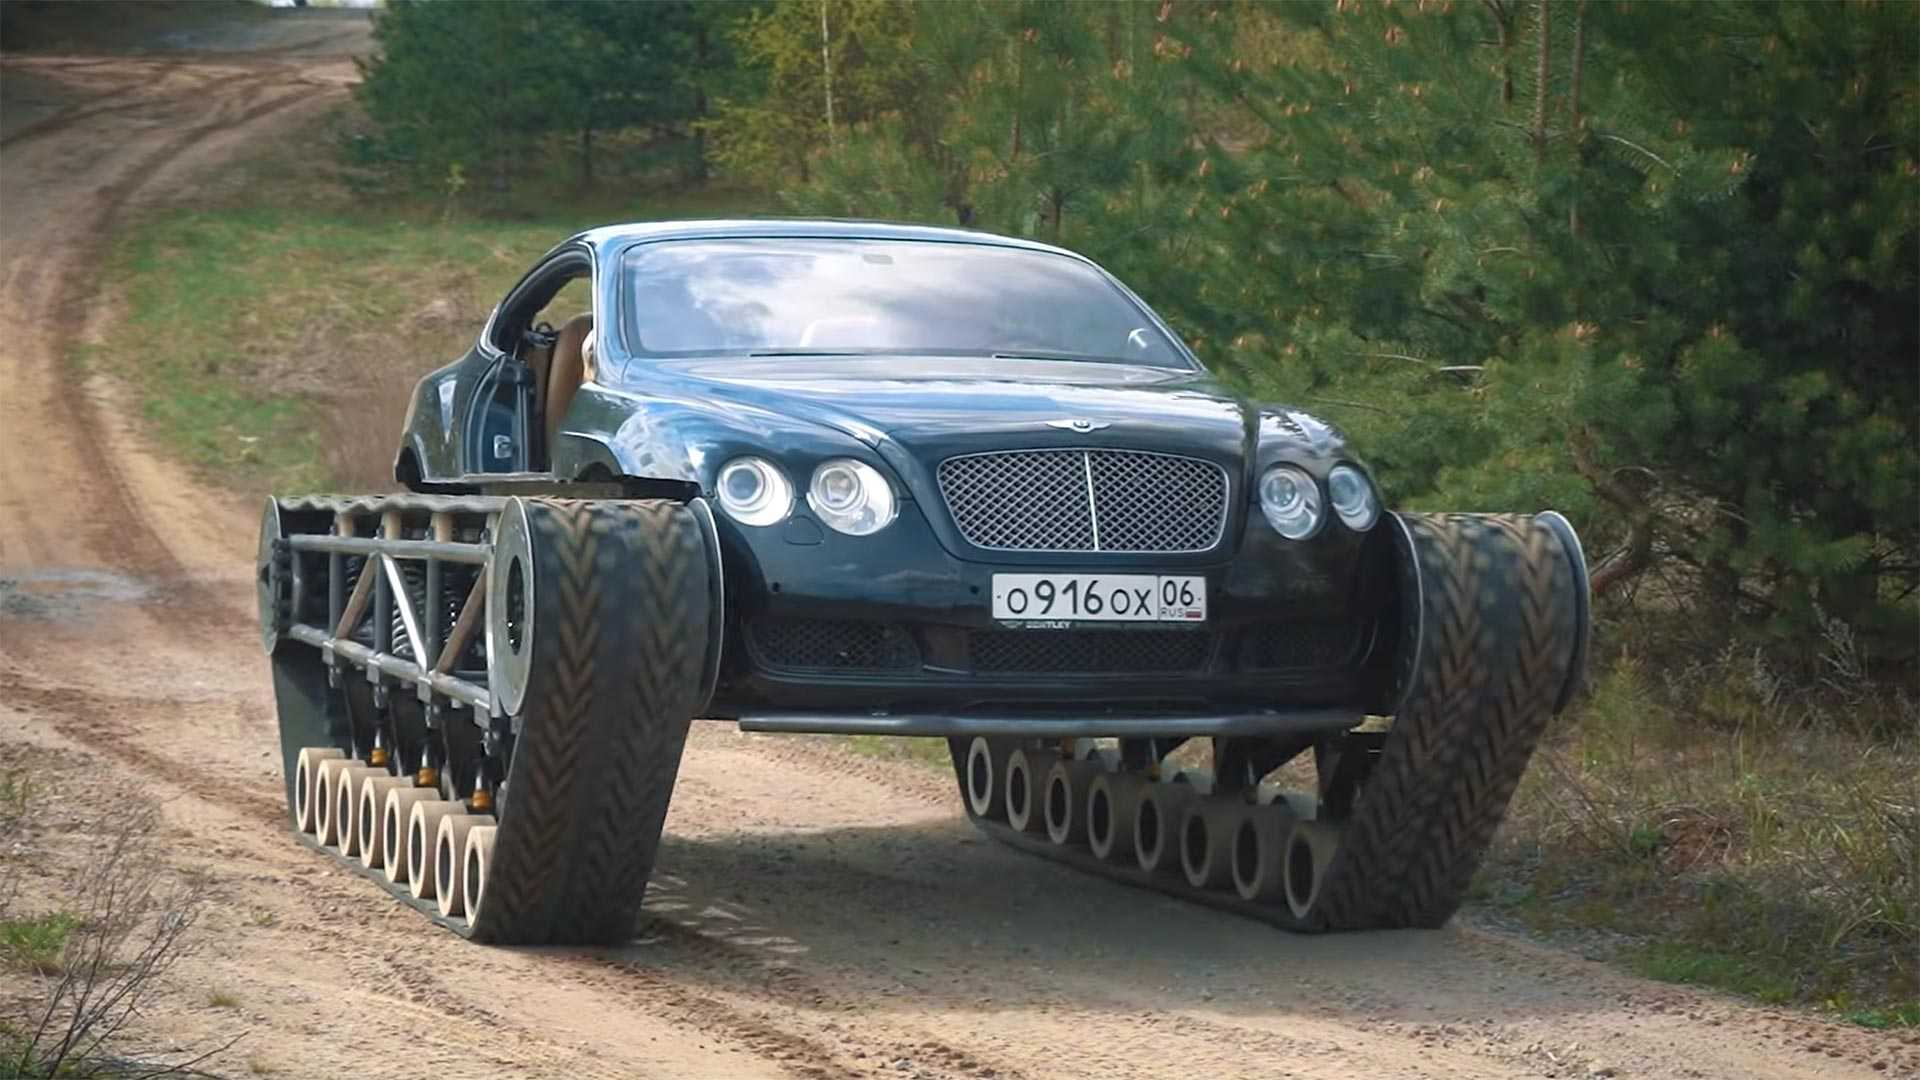 YouTube user AcademeG has recently exploded the Internet with his very own, very special rendition of the Bentley Continental GT